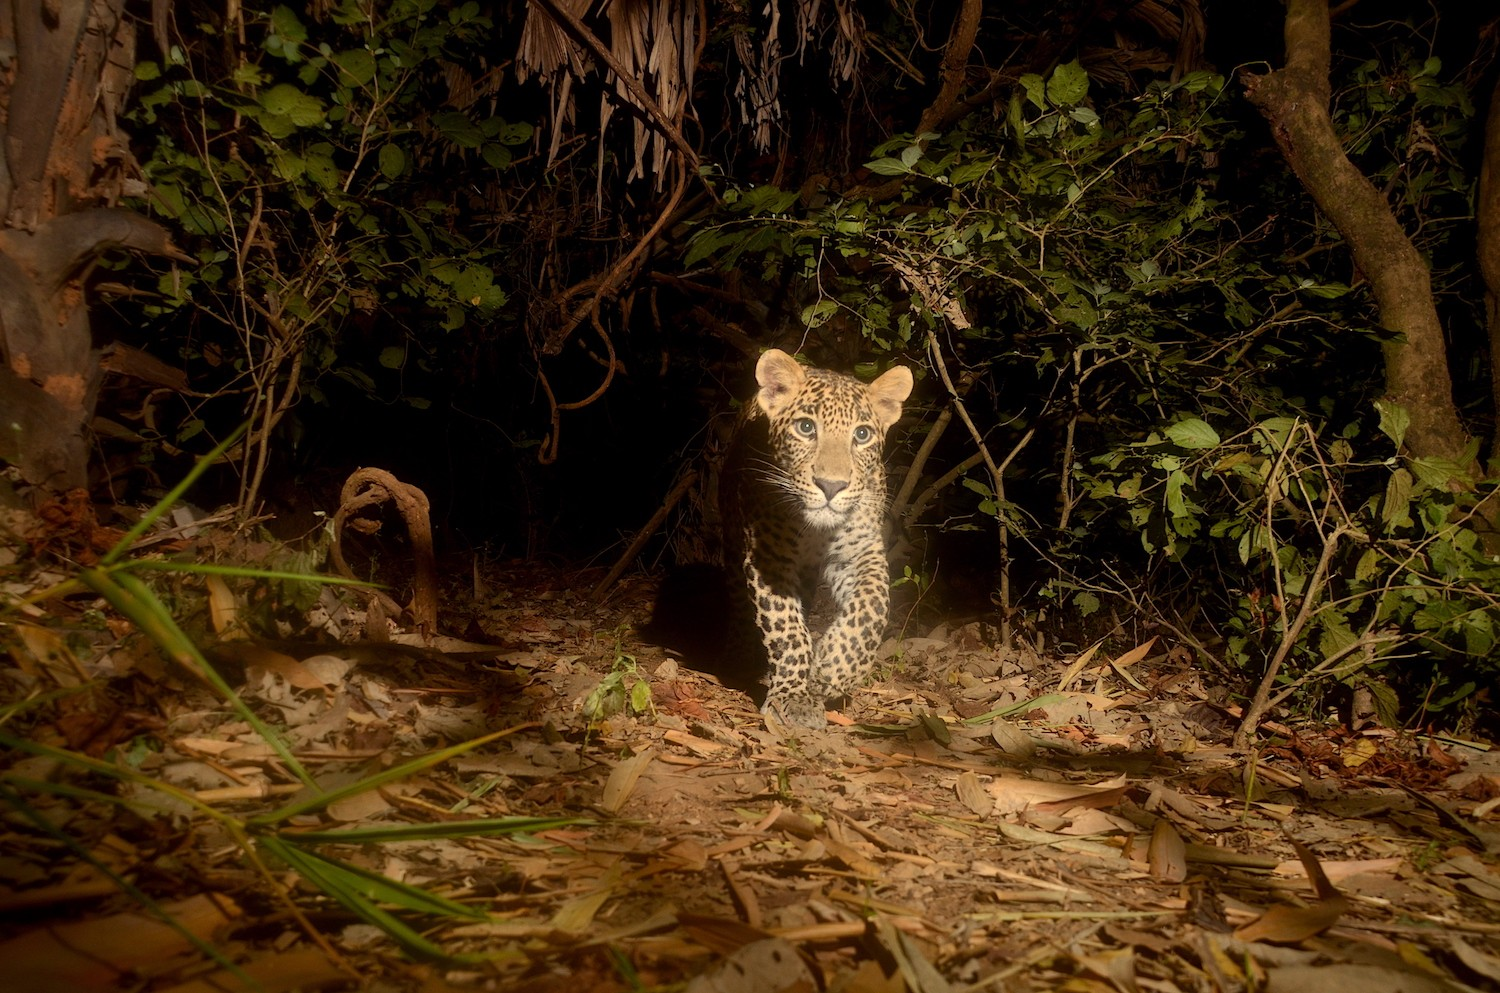 This is one of the two sub-adult cubs of Biyanca, a female leopard who resides in Aarey. Photo: Ranjeet Jadhav